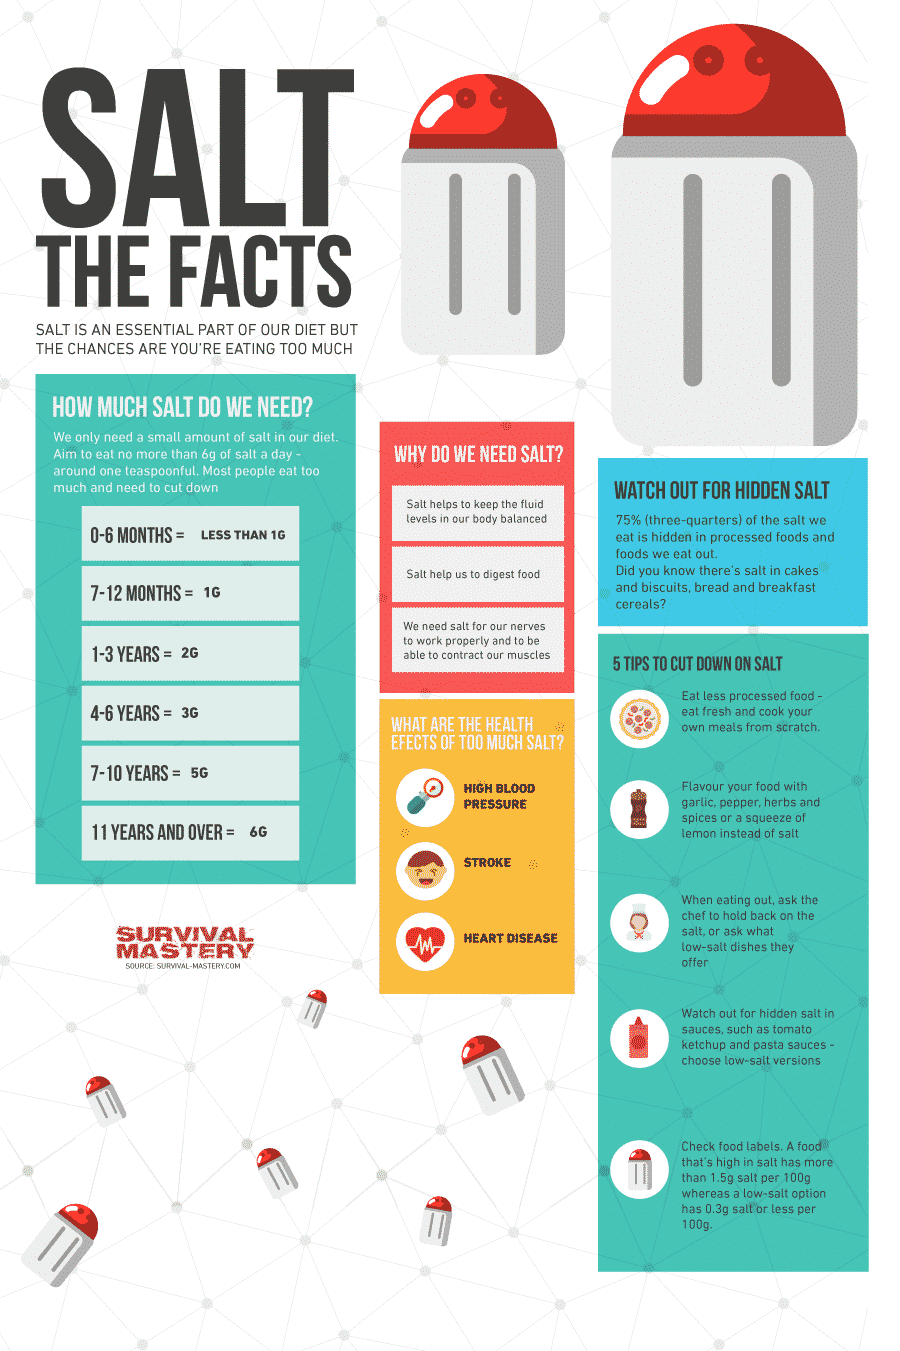 Salt the facts infographic